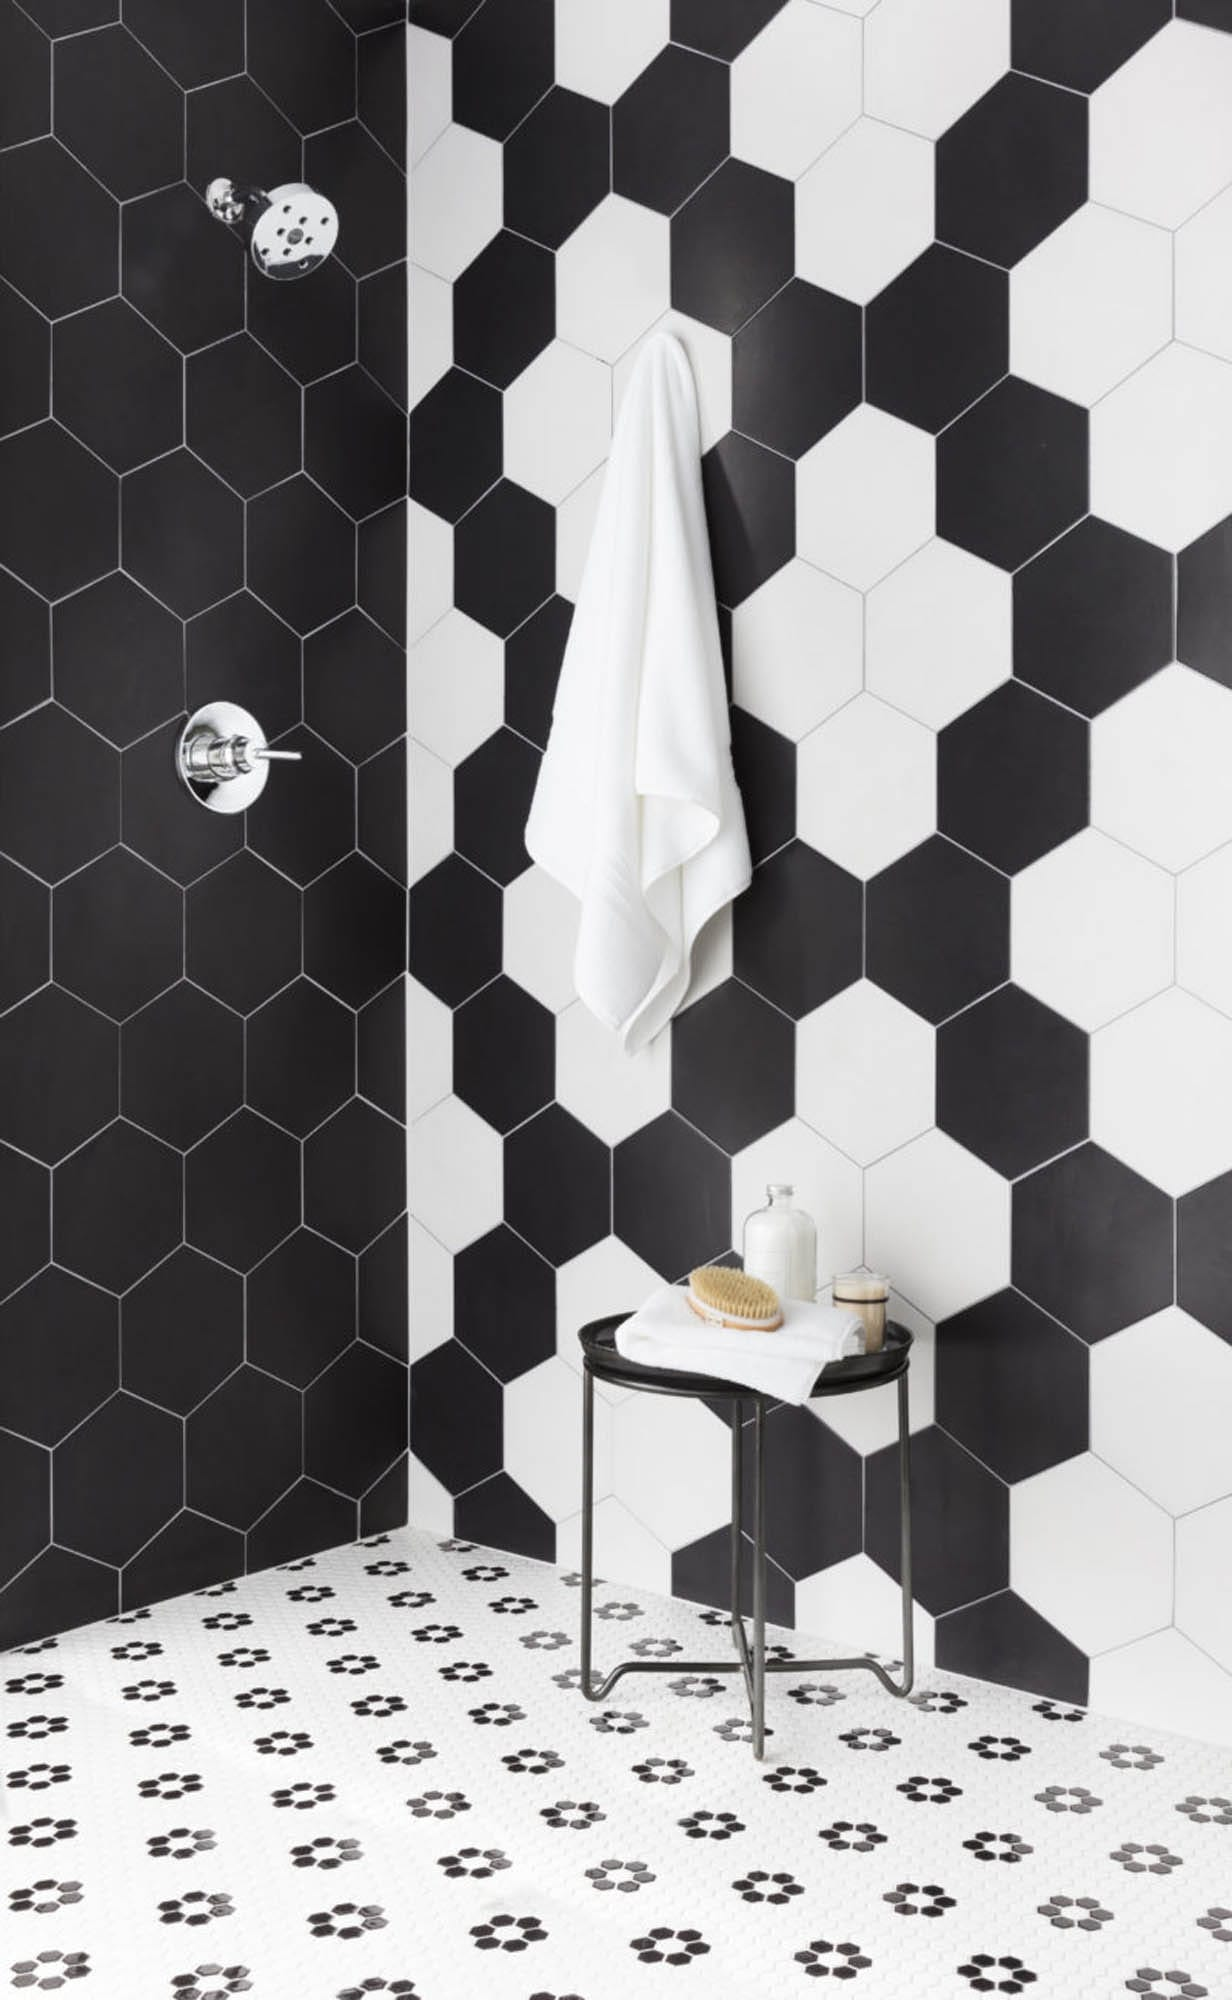 Black-and-white hexagons create a bold shower.